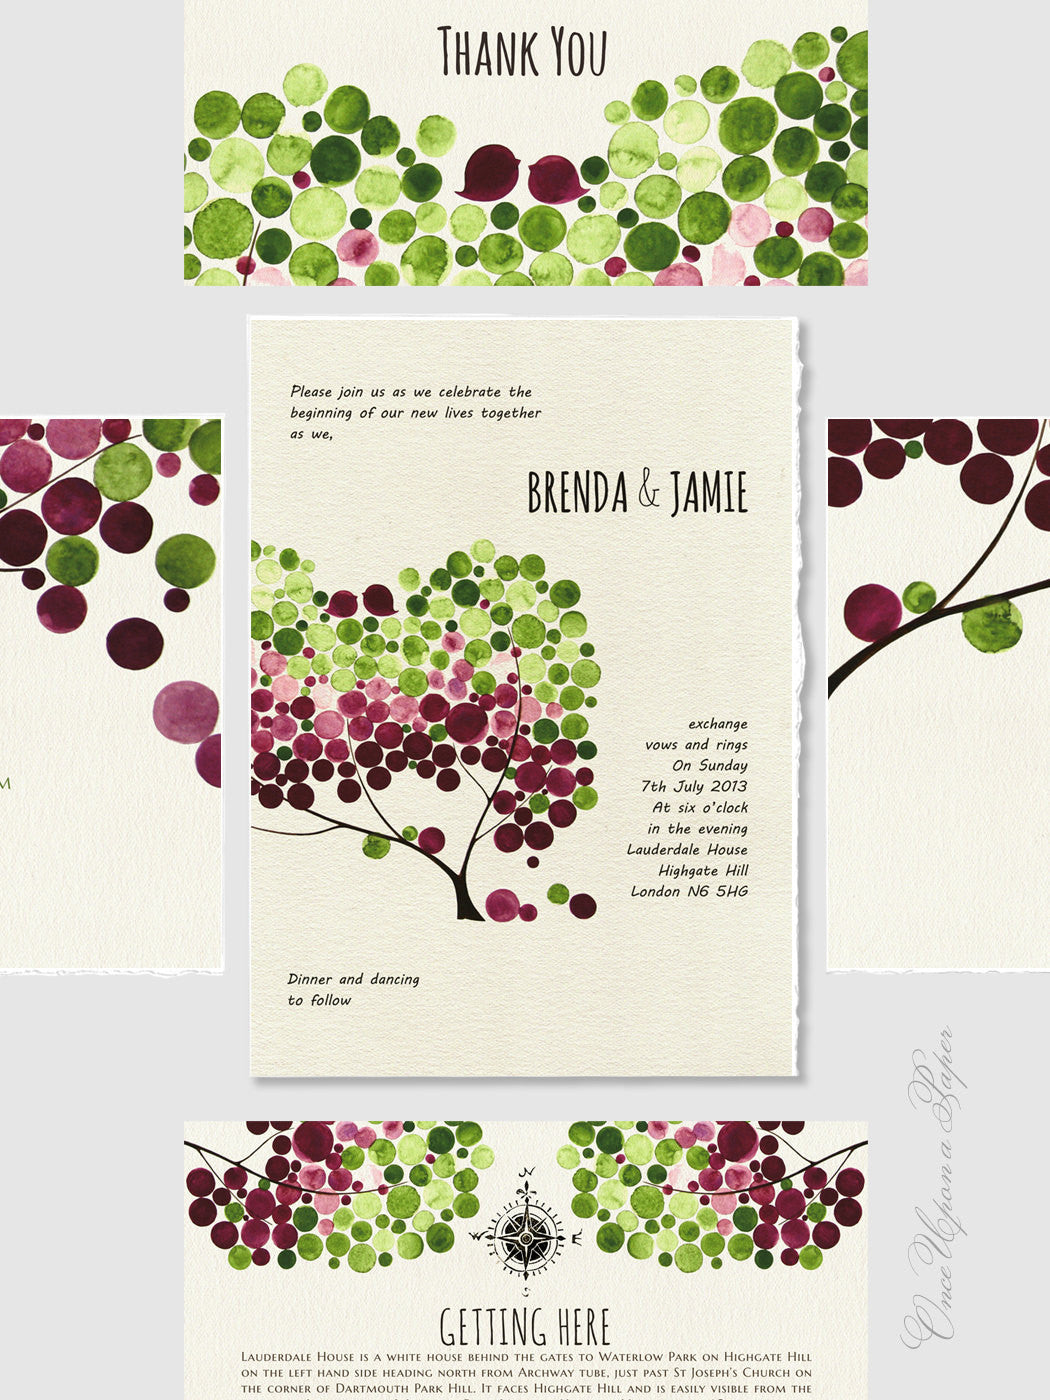 Wedding Invitation Design Package Printable - Save the Date, Wedding Invitations, RSVP, Thank You Cards